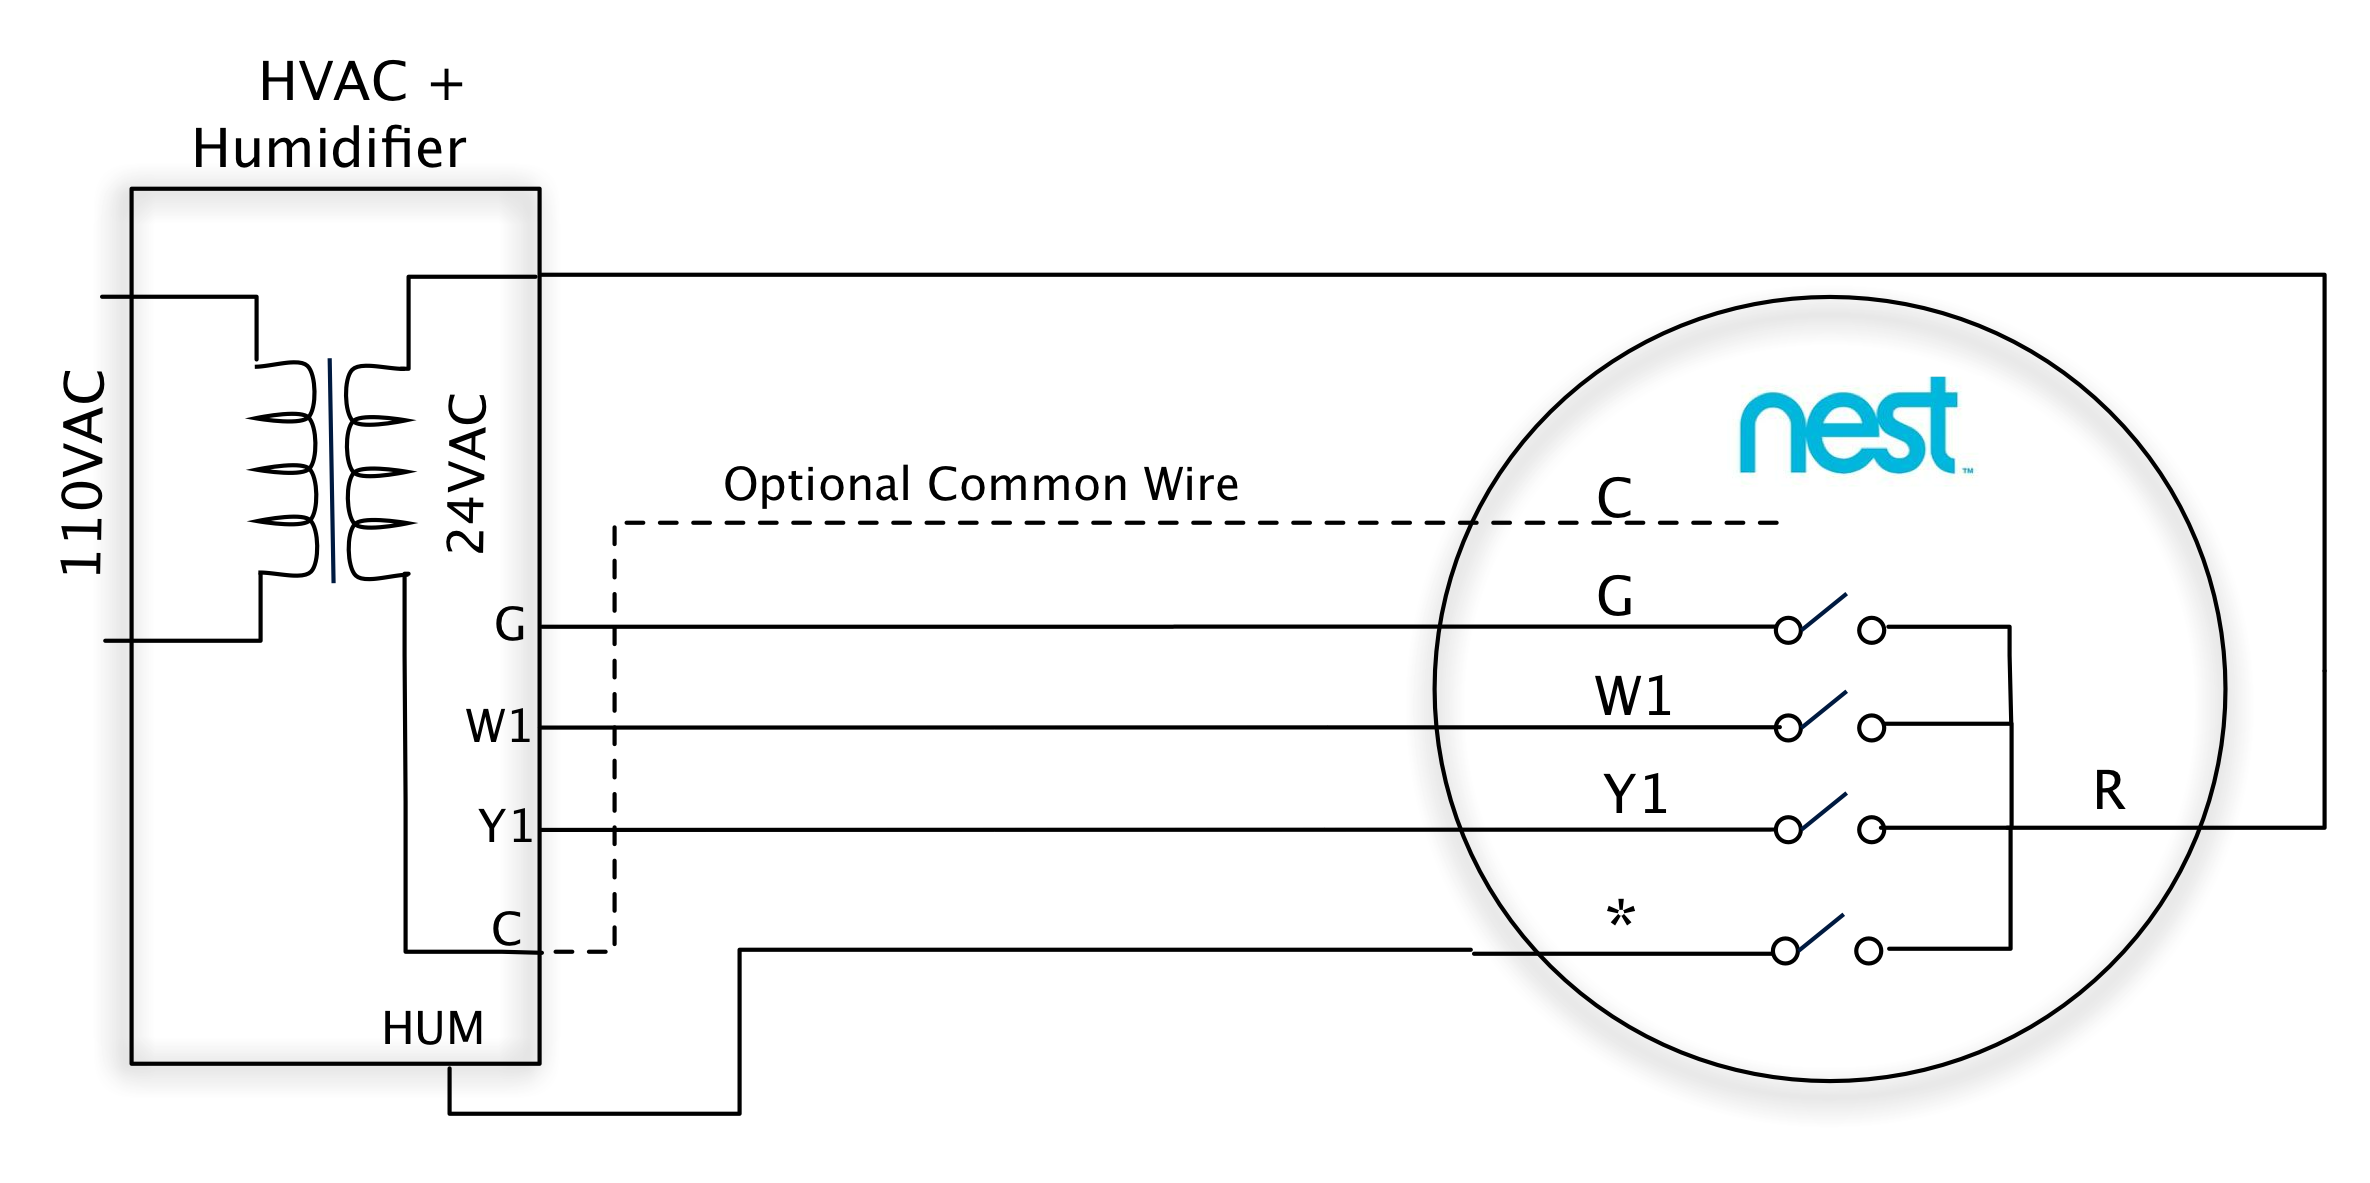 wiring diagram for a nest thermostat wiring wiring diagrams back to top nest 2 install